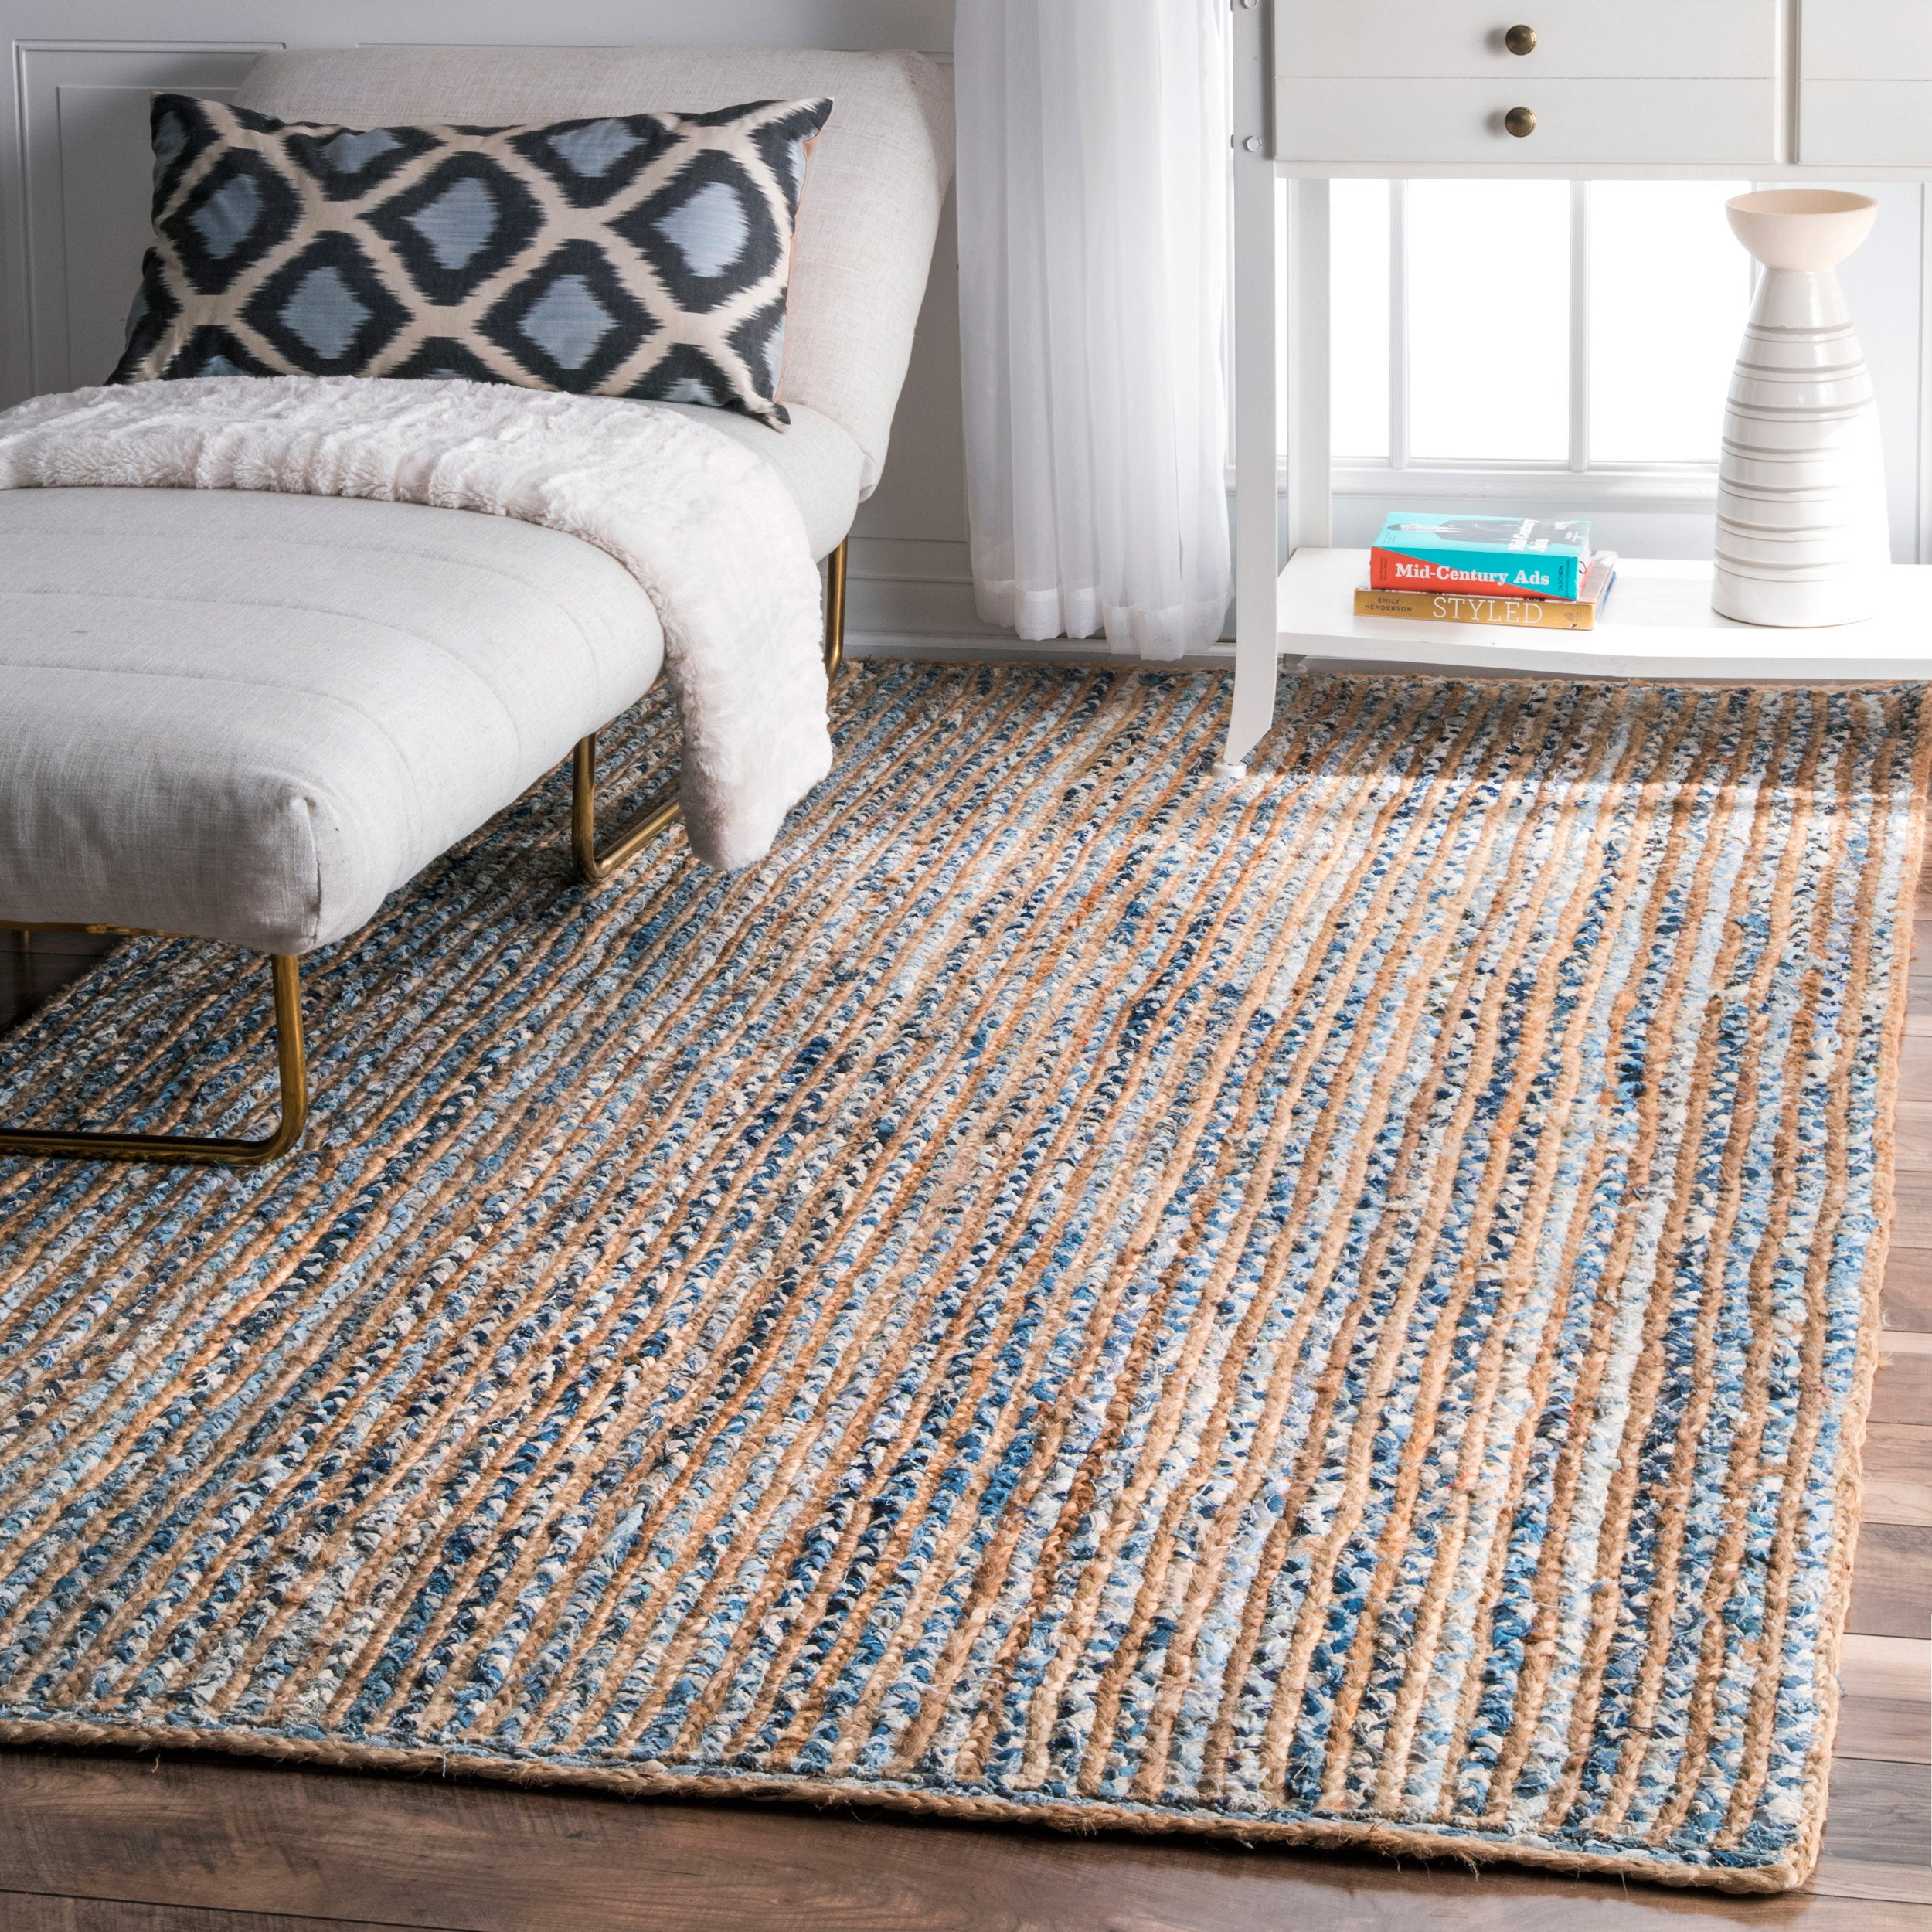 50cbb440b4 nuLOOM Handmade Braided Natural Fiber Jute and Denim Area Rug. by Nuloom